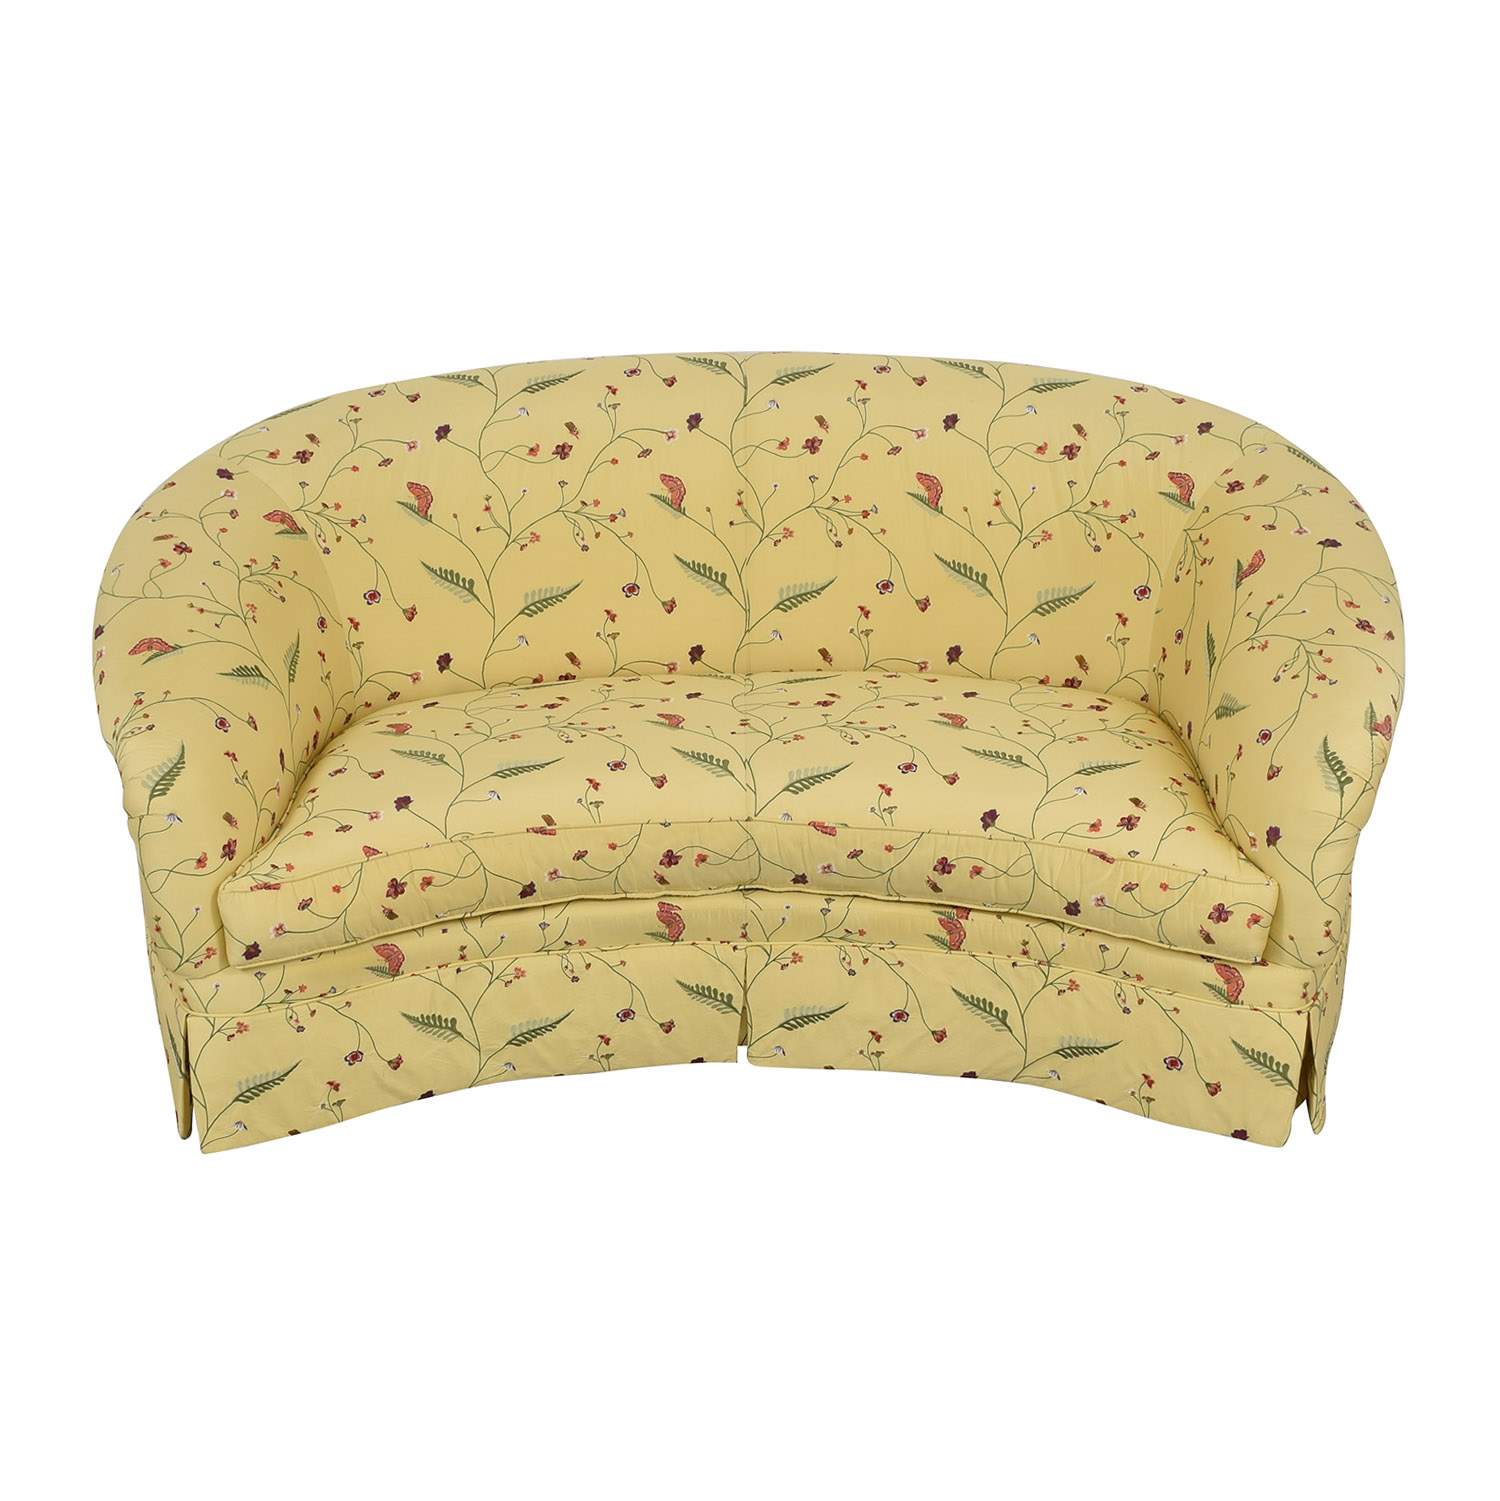 Drexel Heritage Chinoiserie Curved Sofa sale